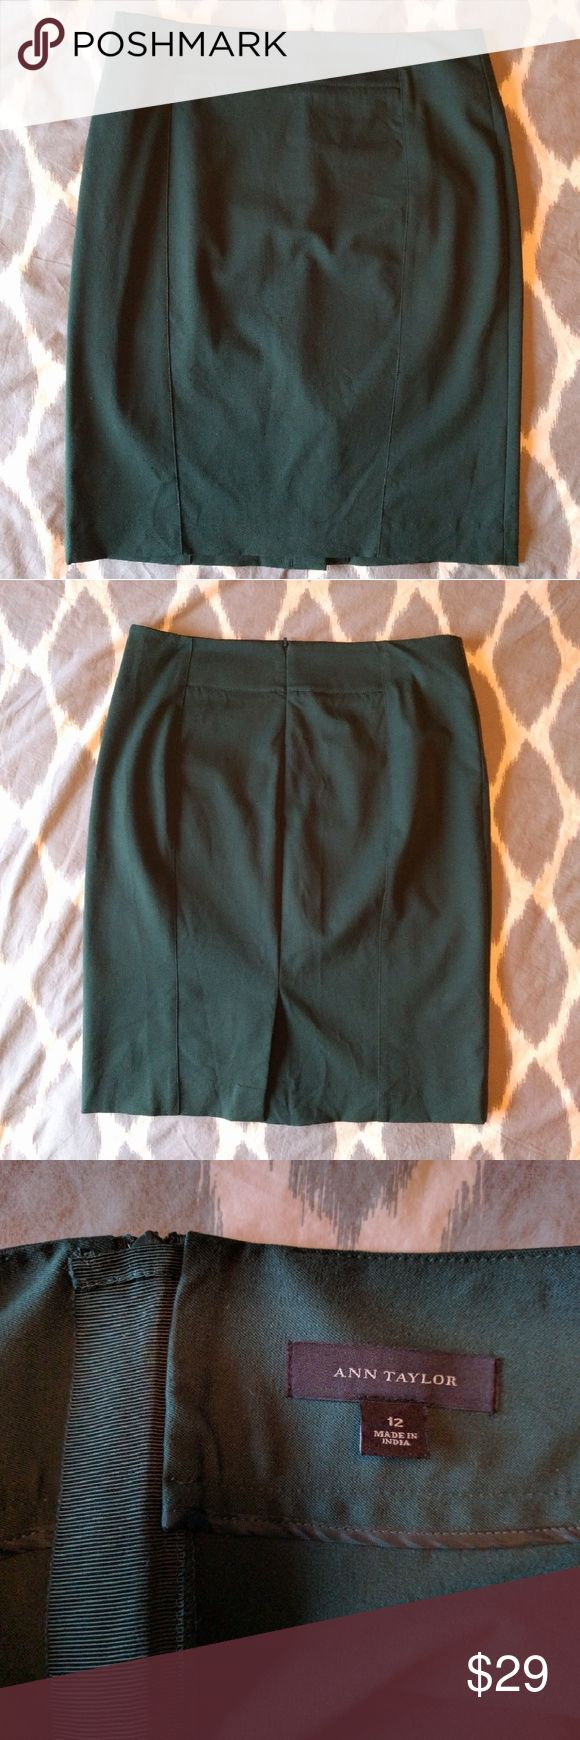 Ann Taylor stretch pencil skirt hunter green 12 EUC! Sleek and stretchy, our amazingly sharp pencil skirt sports contoured seaming details for figure flattering definition. Hidden back zipper with snap closure. Back vent. Ann Taylor Skirts Pencil